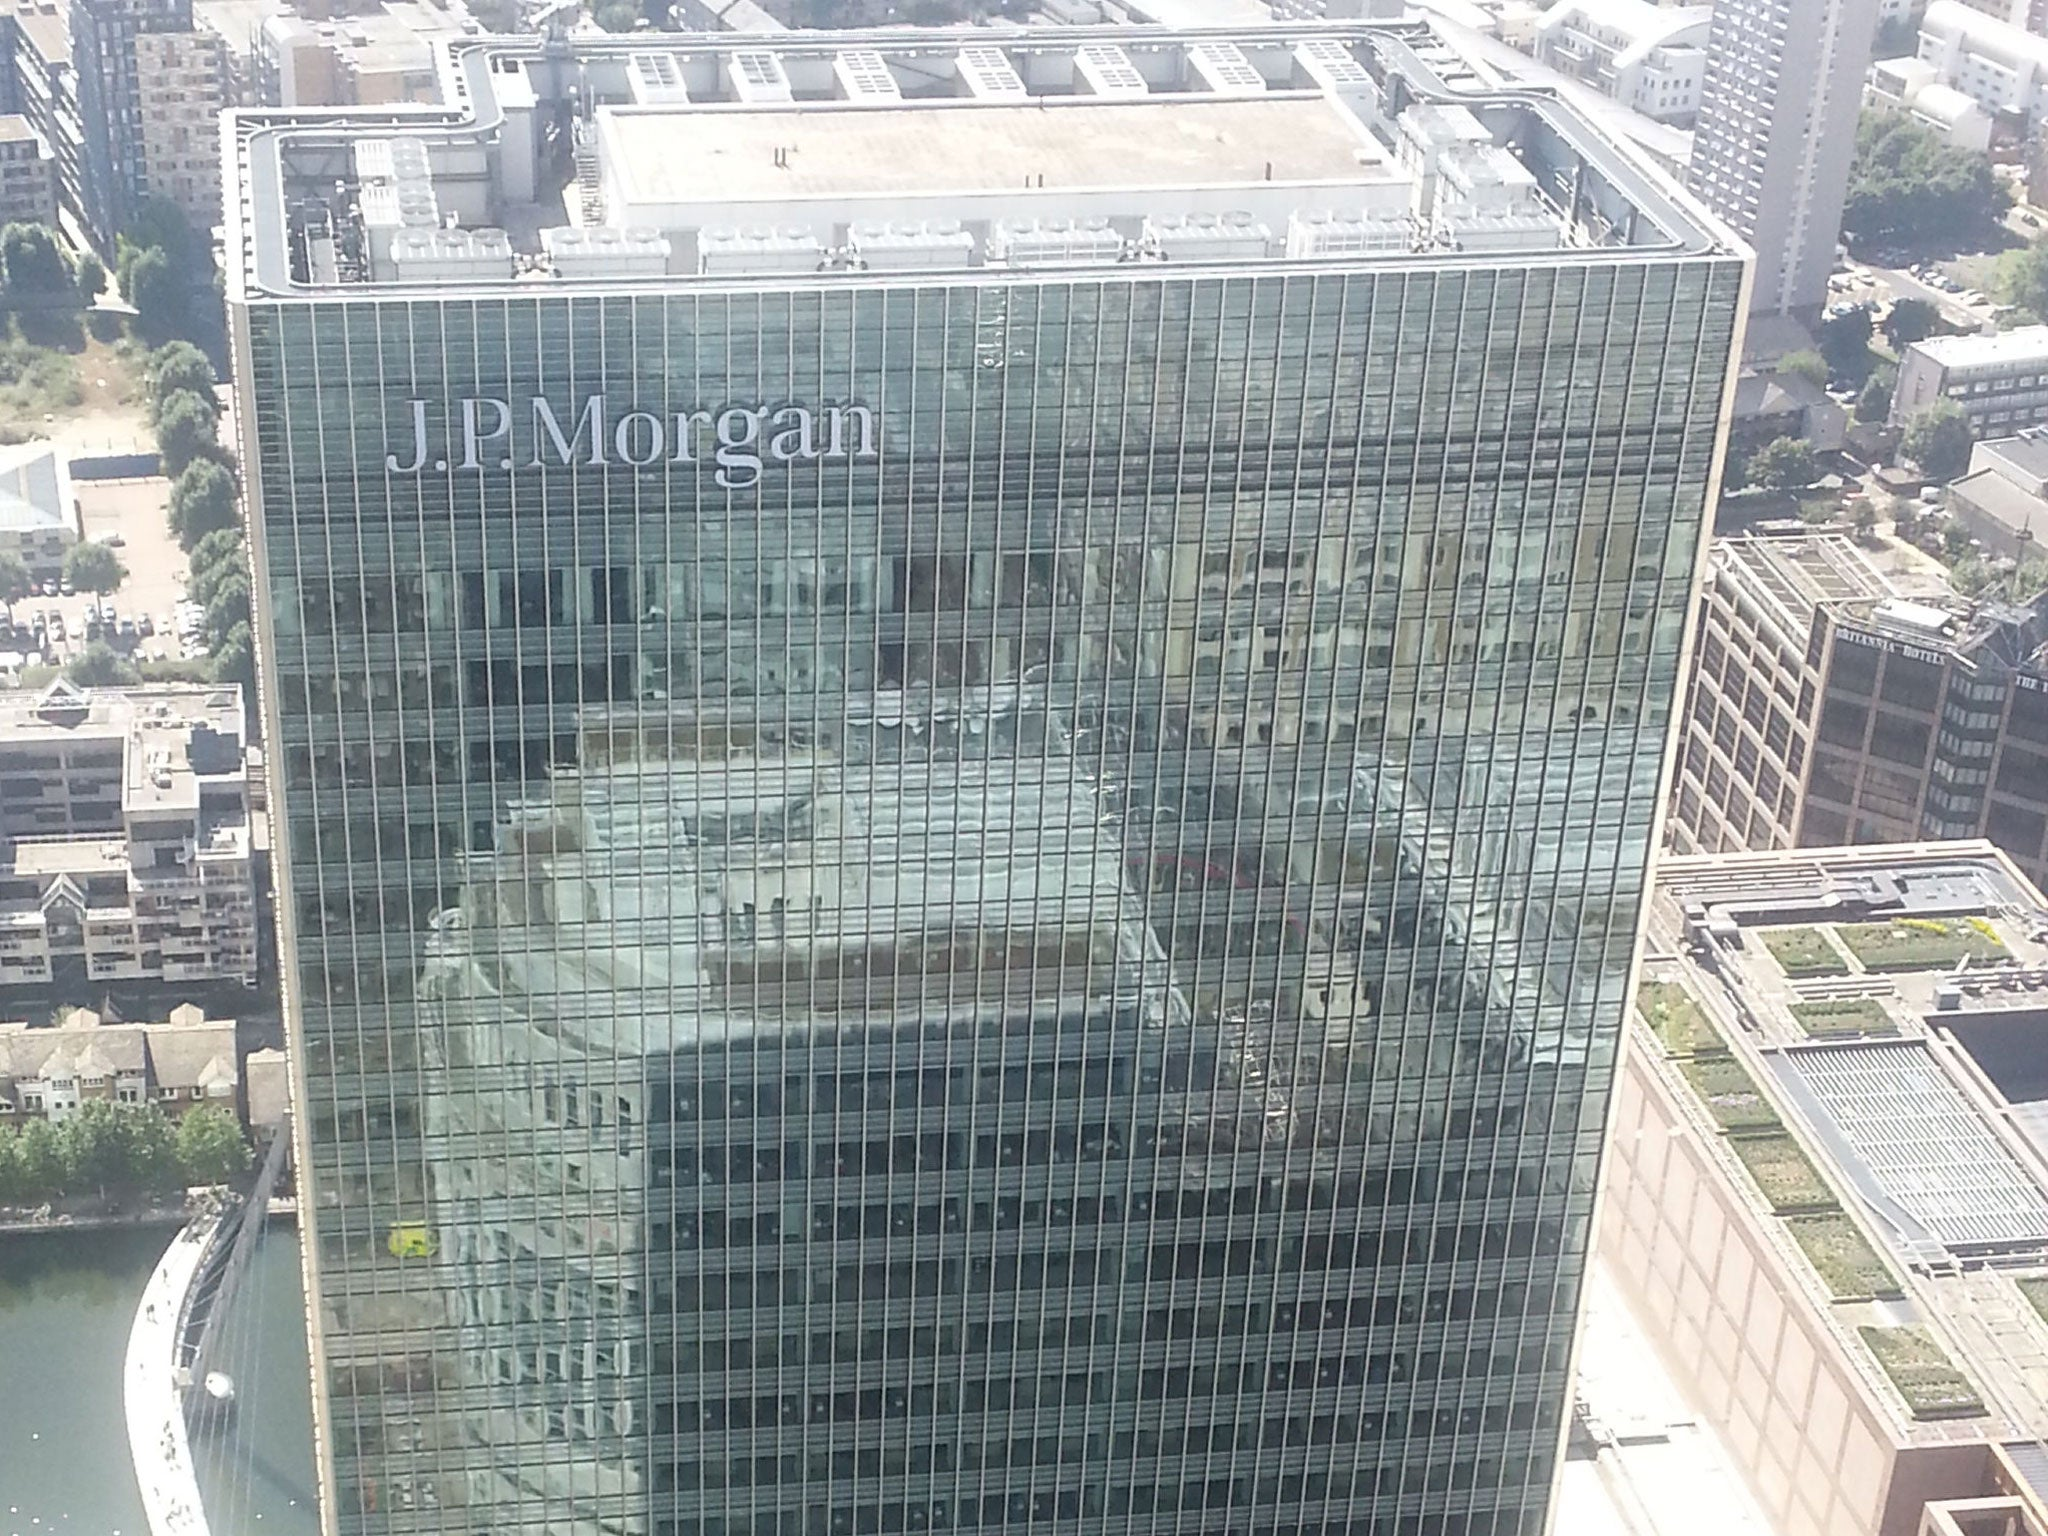 Jp Morgan Chase - latest news, breaking stories and comment - The